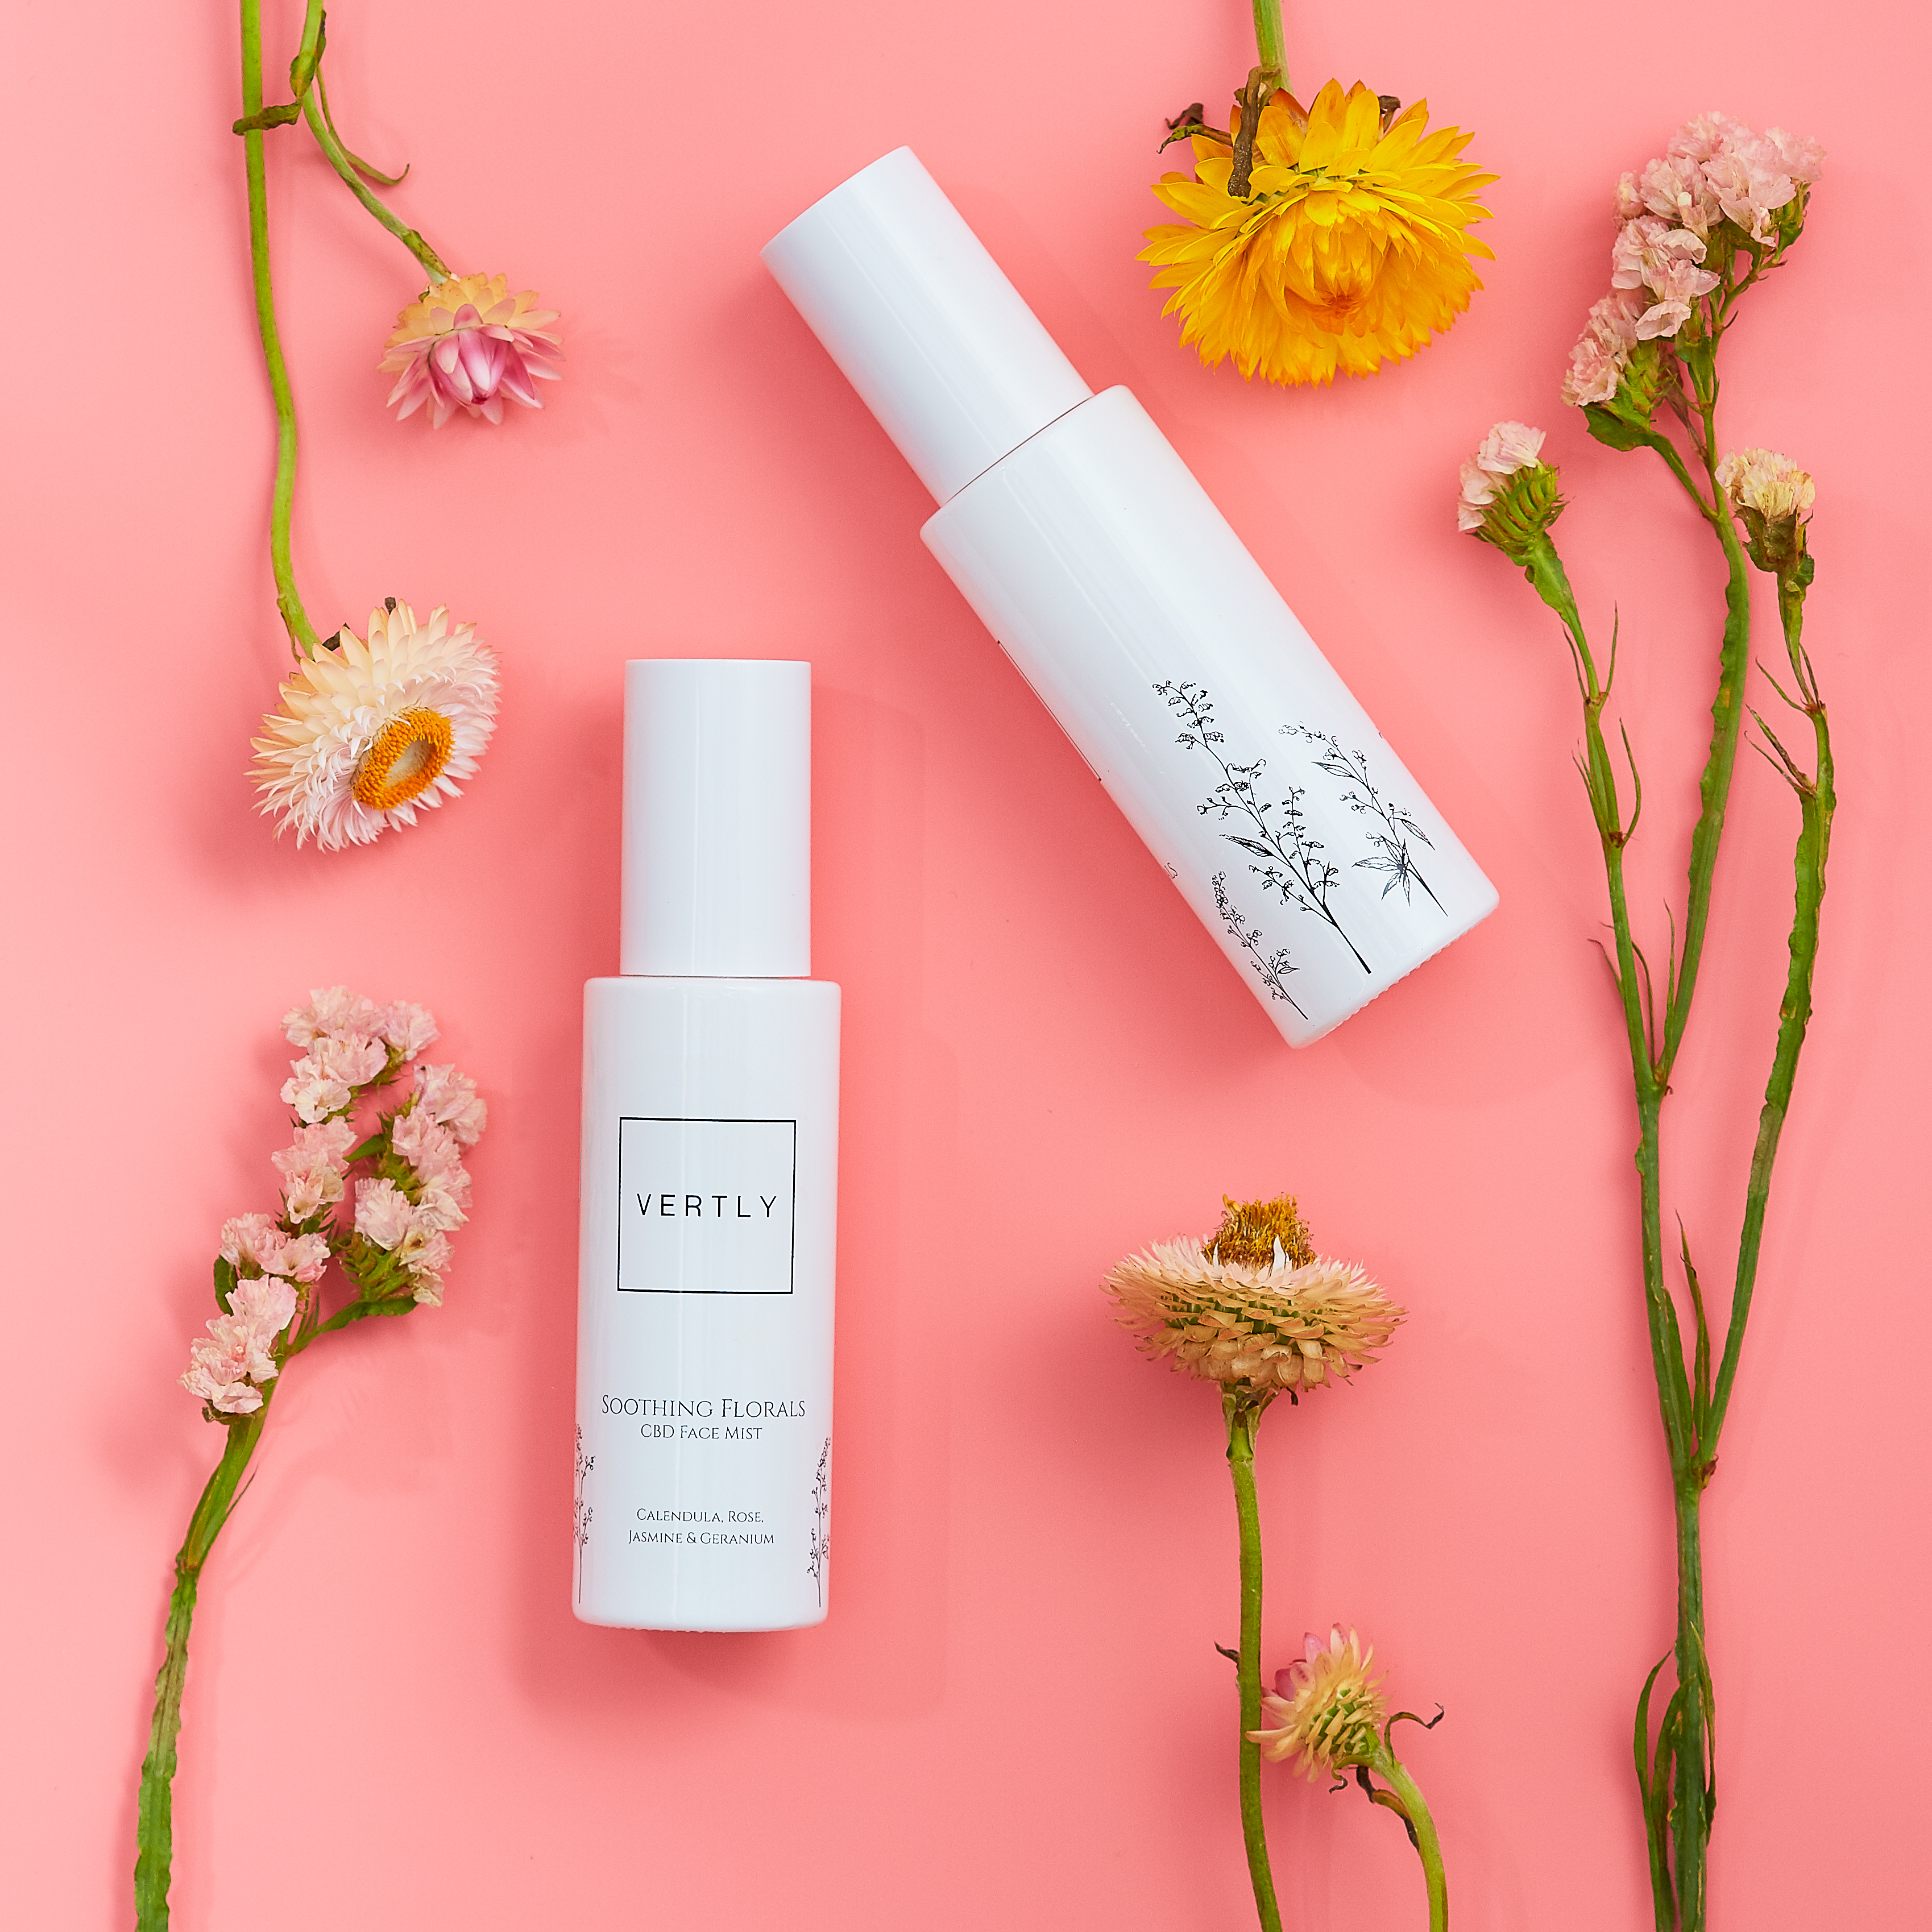 Vertly's Soothing Florals CBD Face Mist.